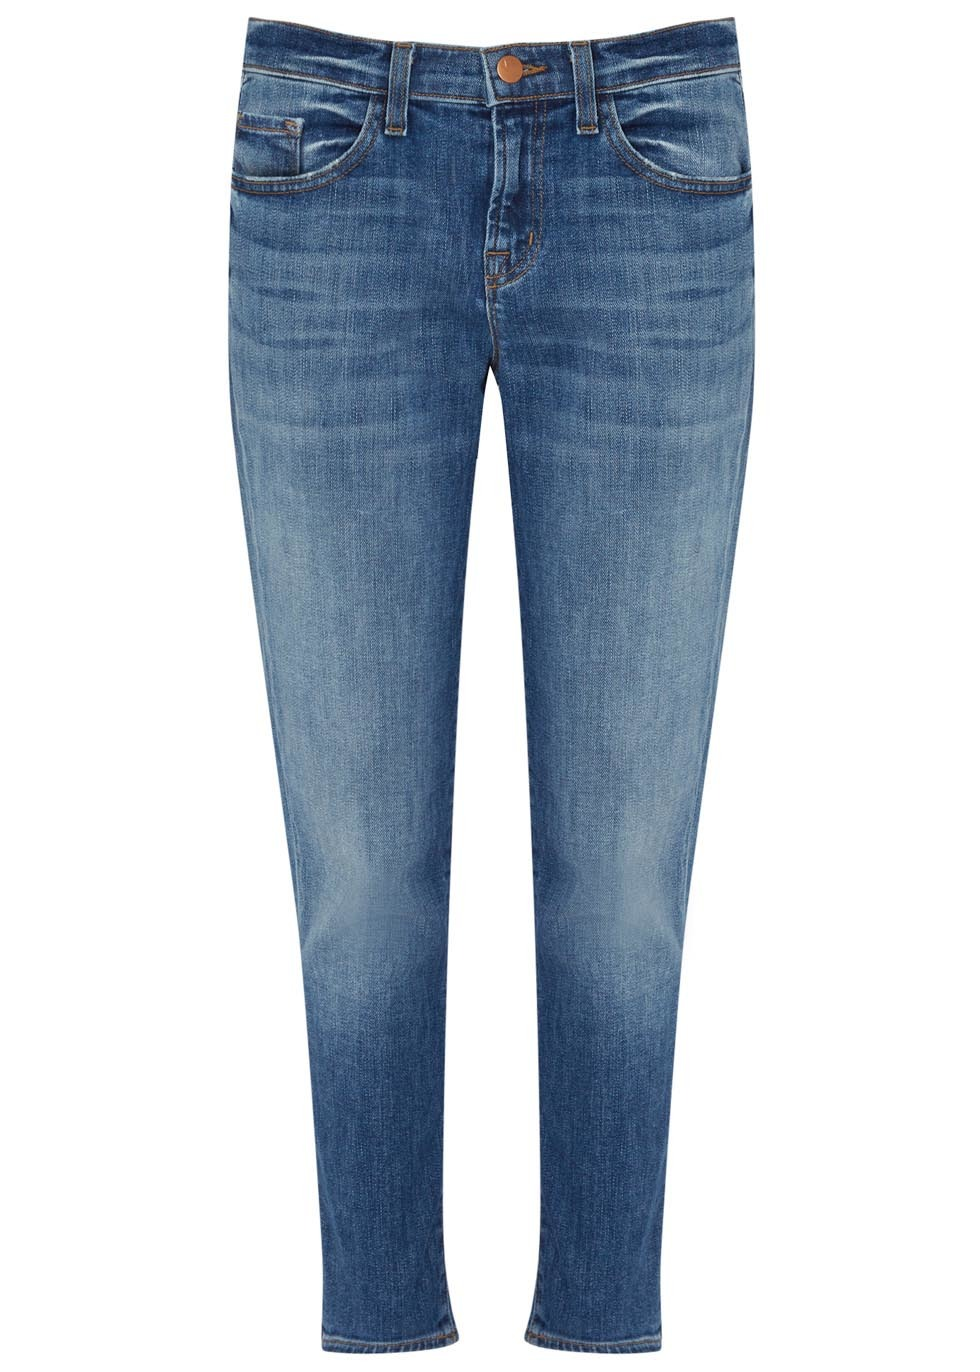 Sadey Blue Cropped Slim Leg Jeans - pattern: plain; pocket detail: traditional 5 pocket; style: slim leg; waist: mid/regular rise; predominant colour: denim; occasions: casual; length: ankle length; fibres: cotton - mix; jeans detail: whiskering, shading down centre of thigh; texture group: denim; pattern type: fabric; season: s/s 2016; wardrobe: basic